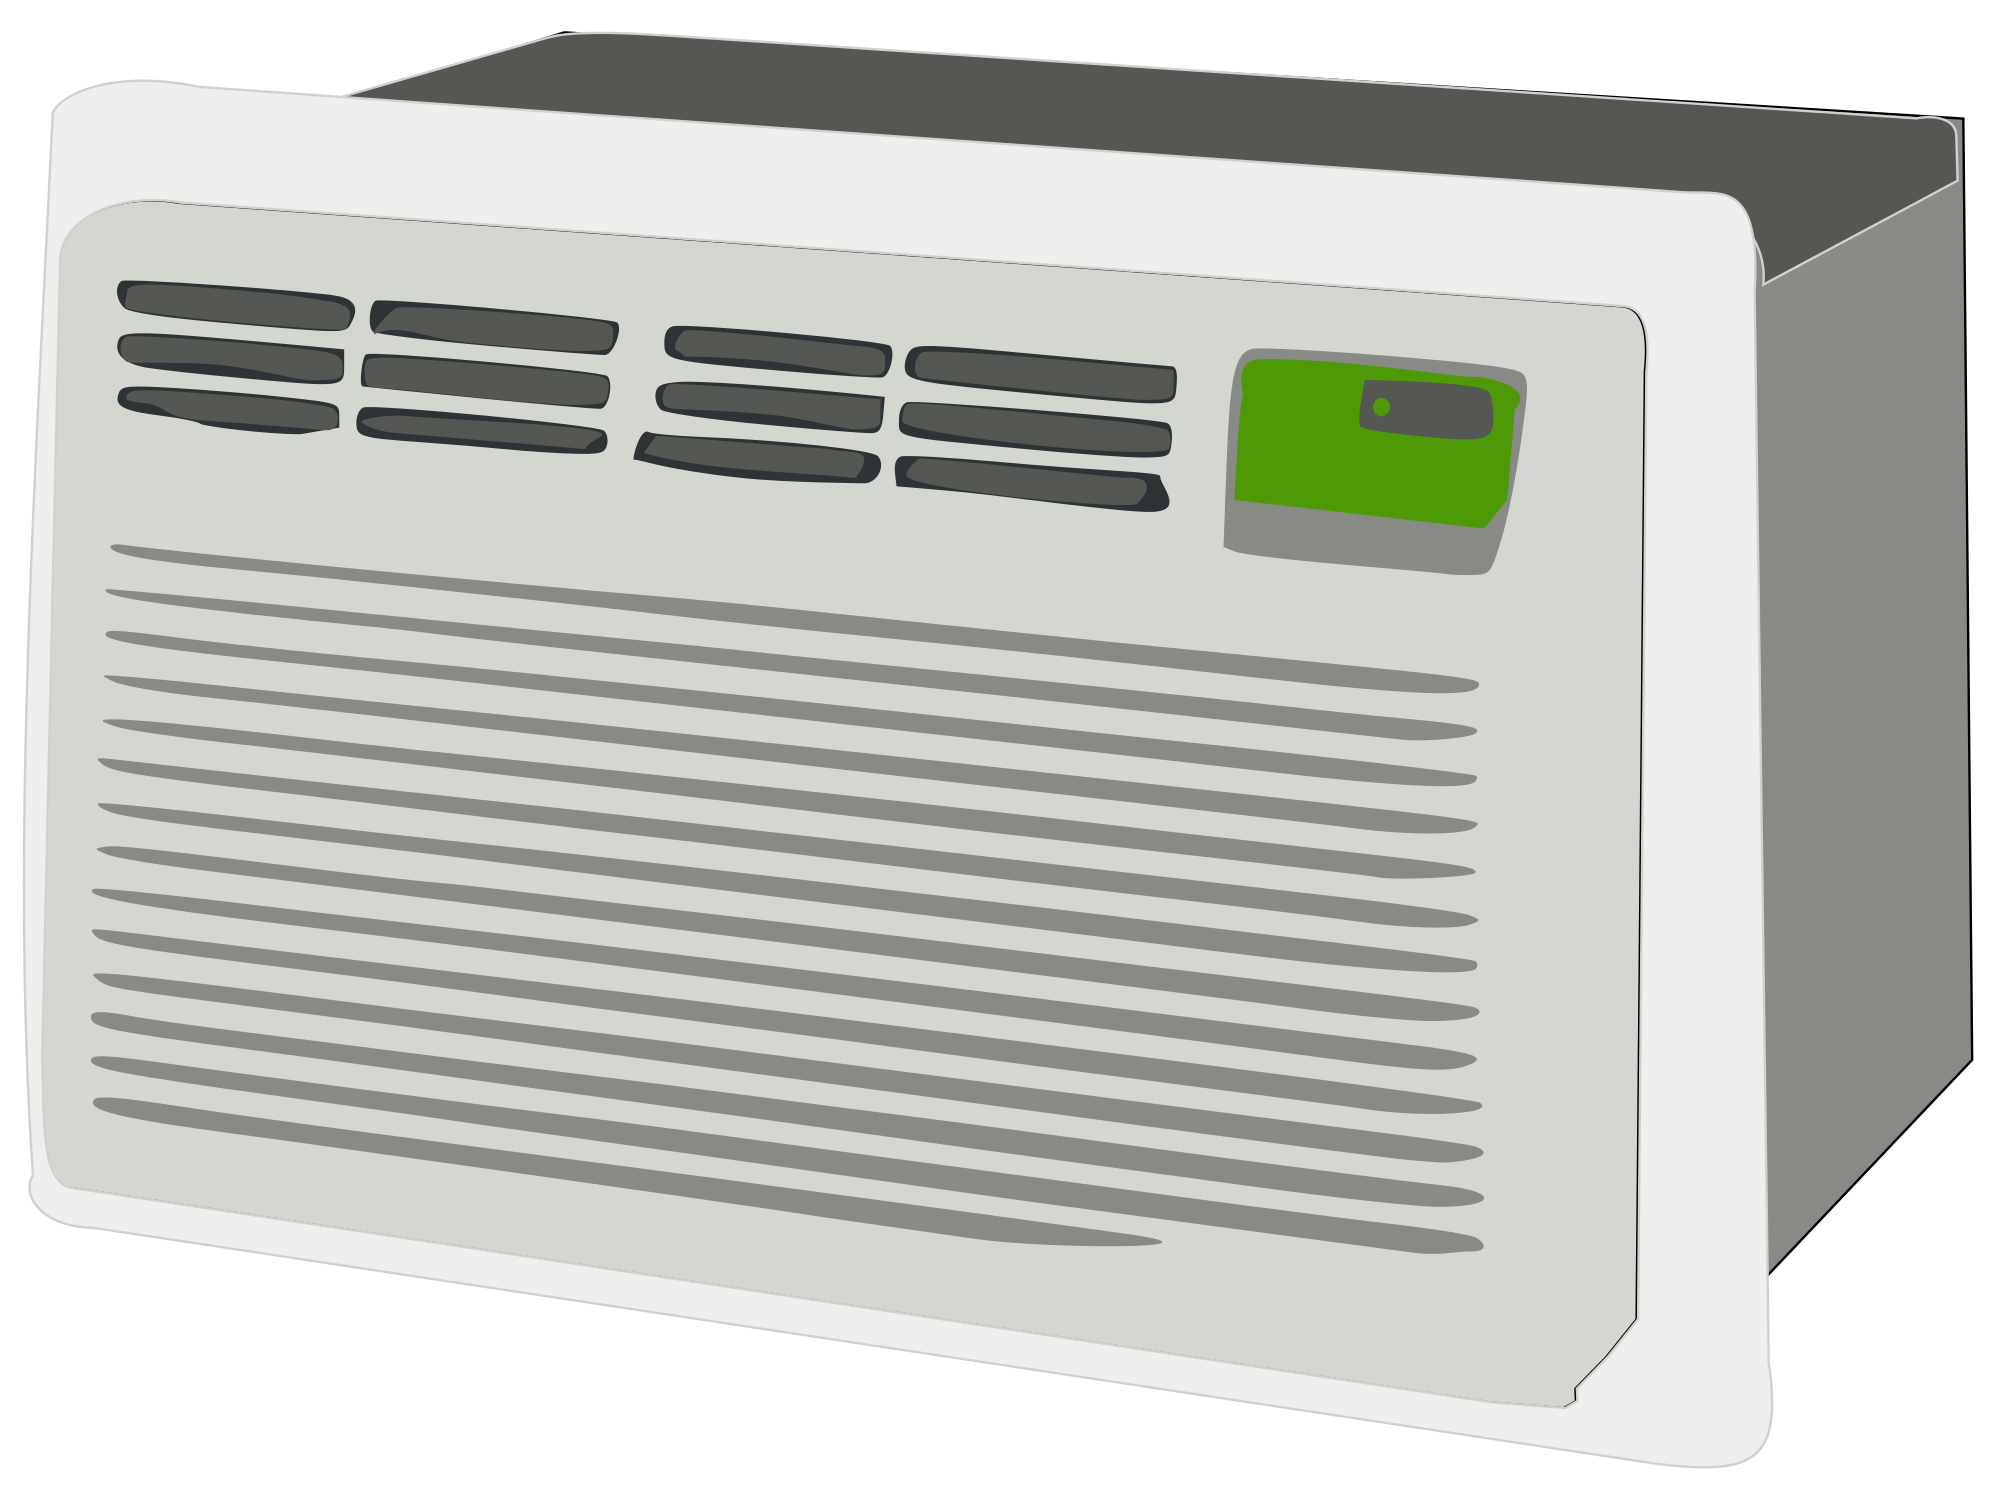 Pin by Udash on Clipart Heating, air conditioning